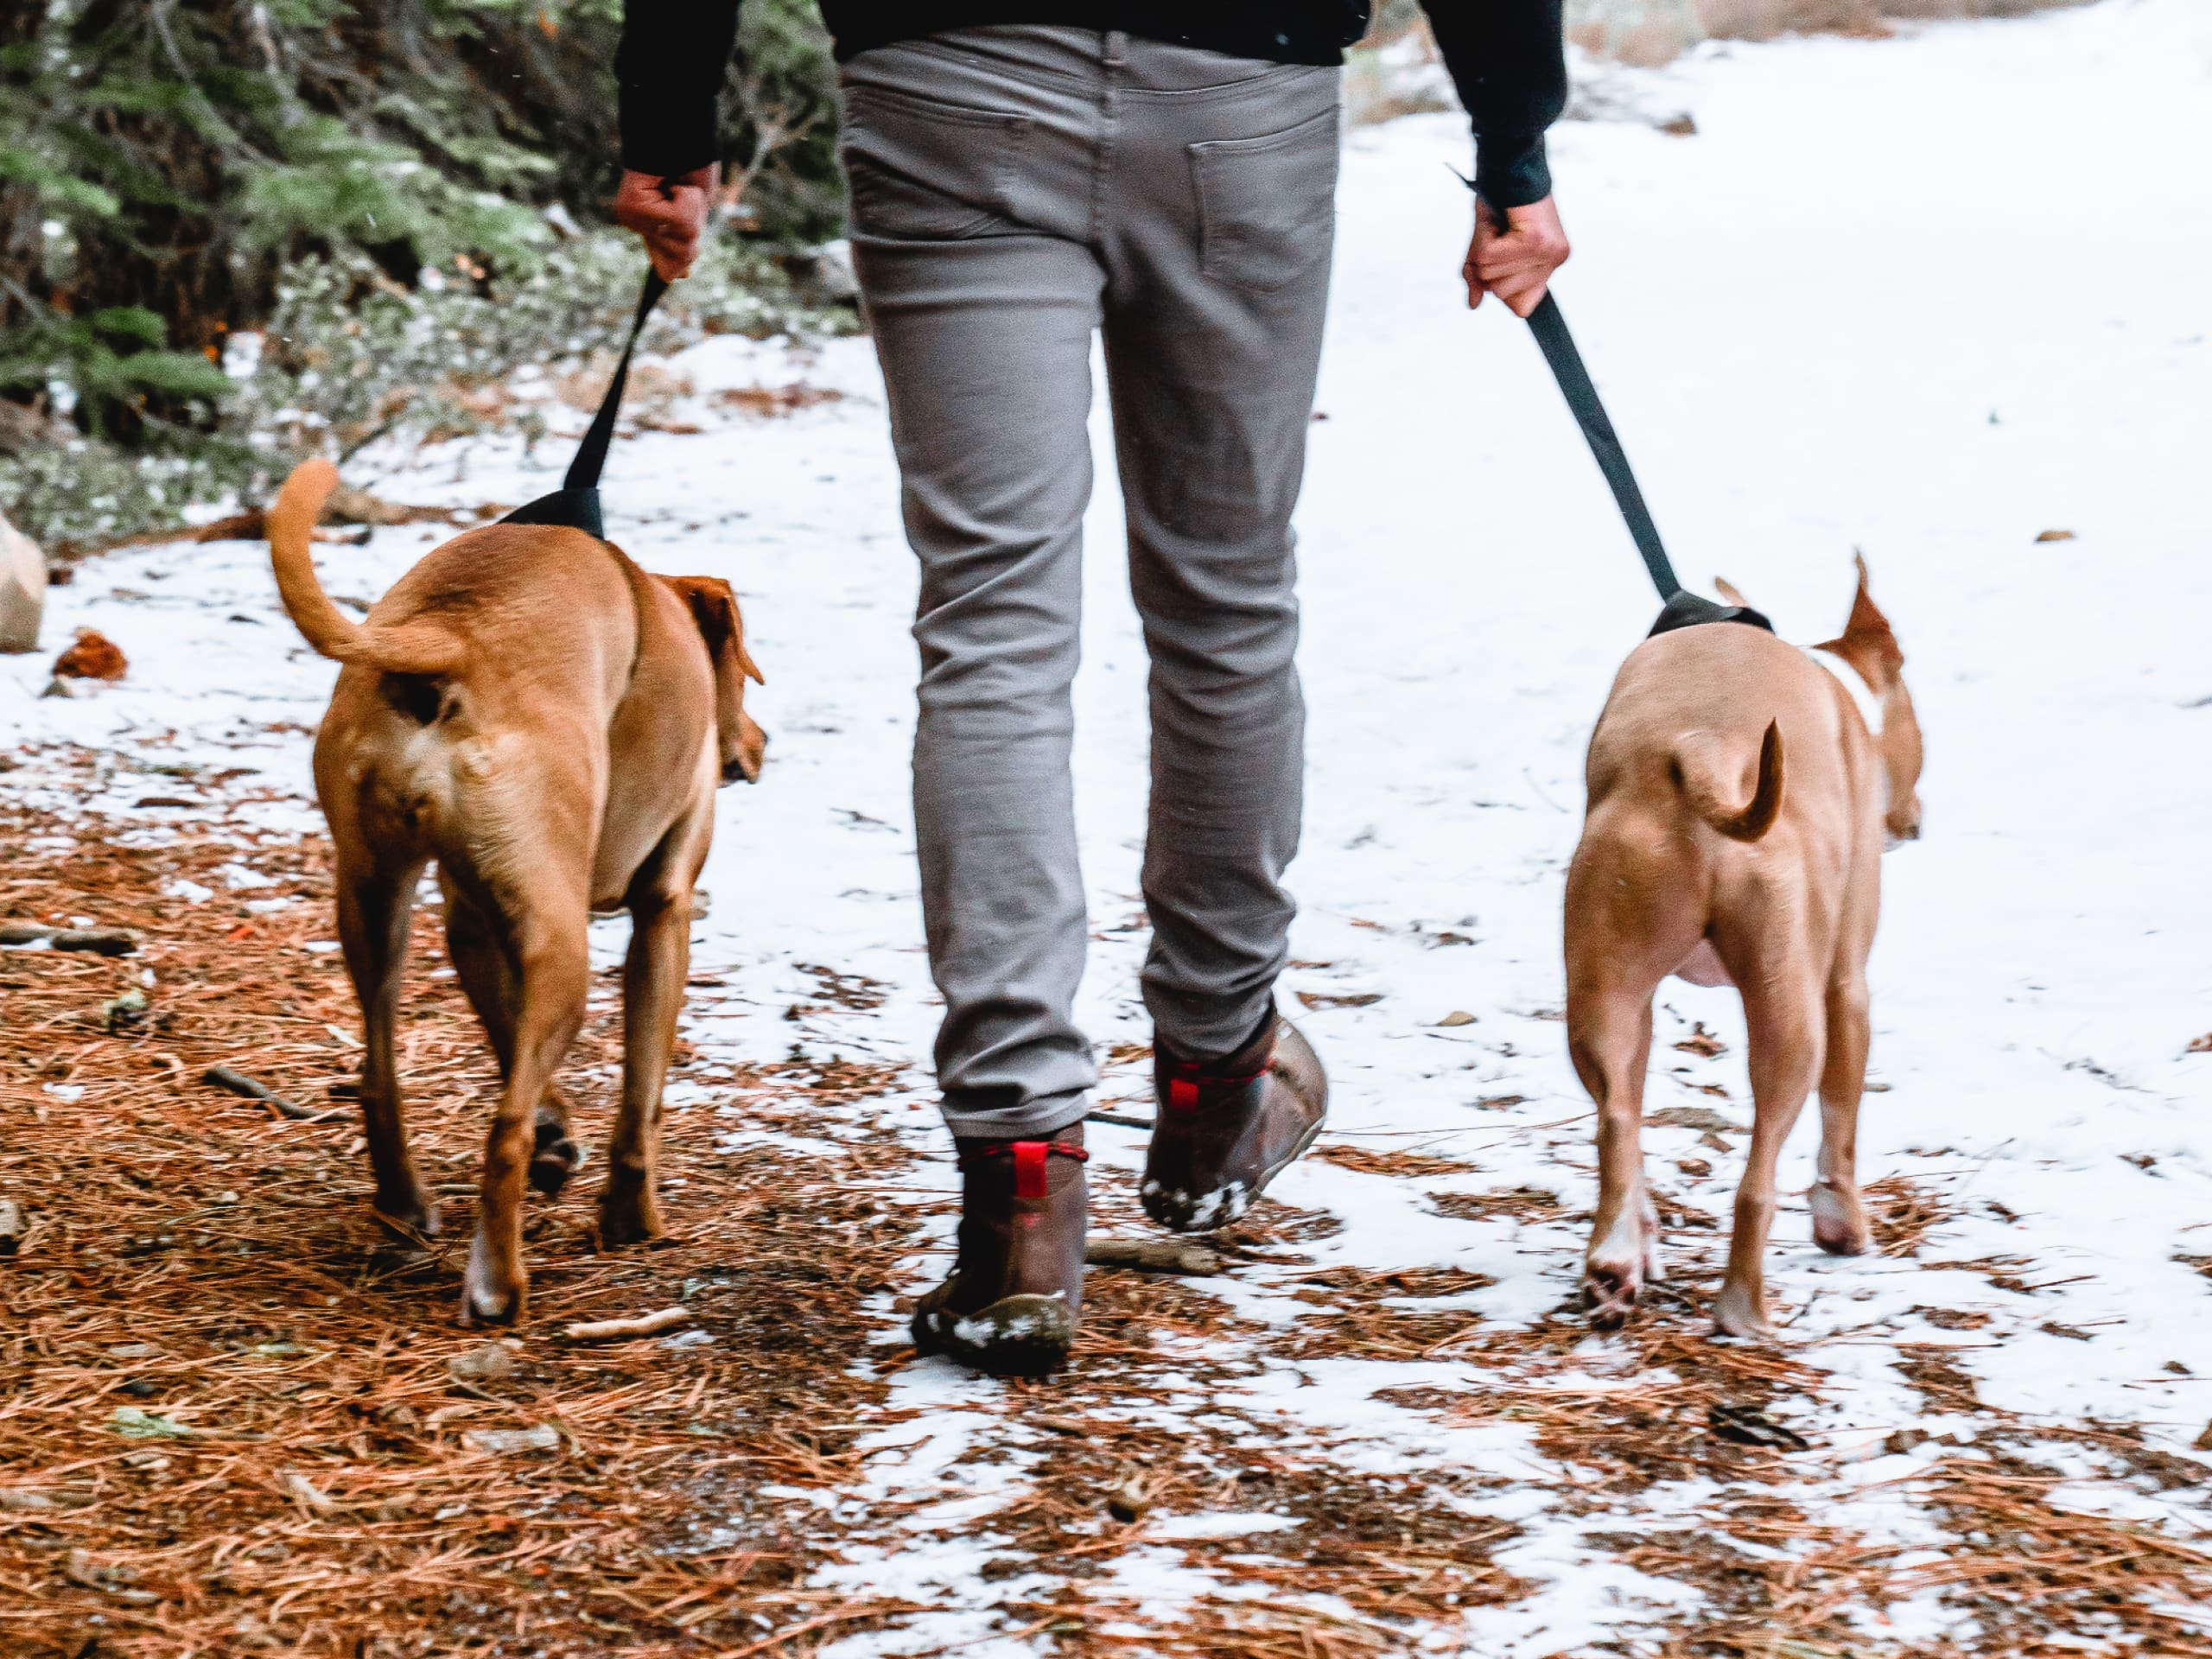 Two dogs walking outdoors during the winter